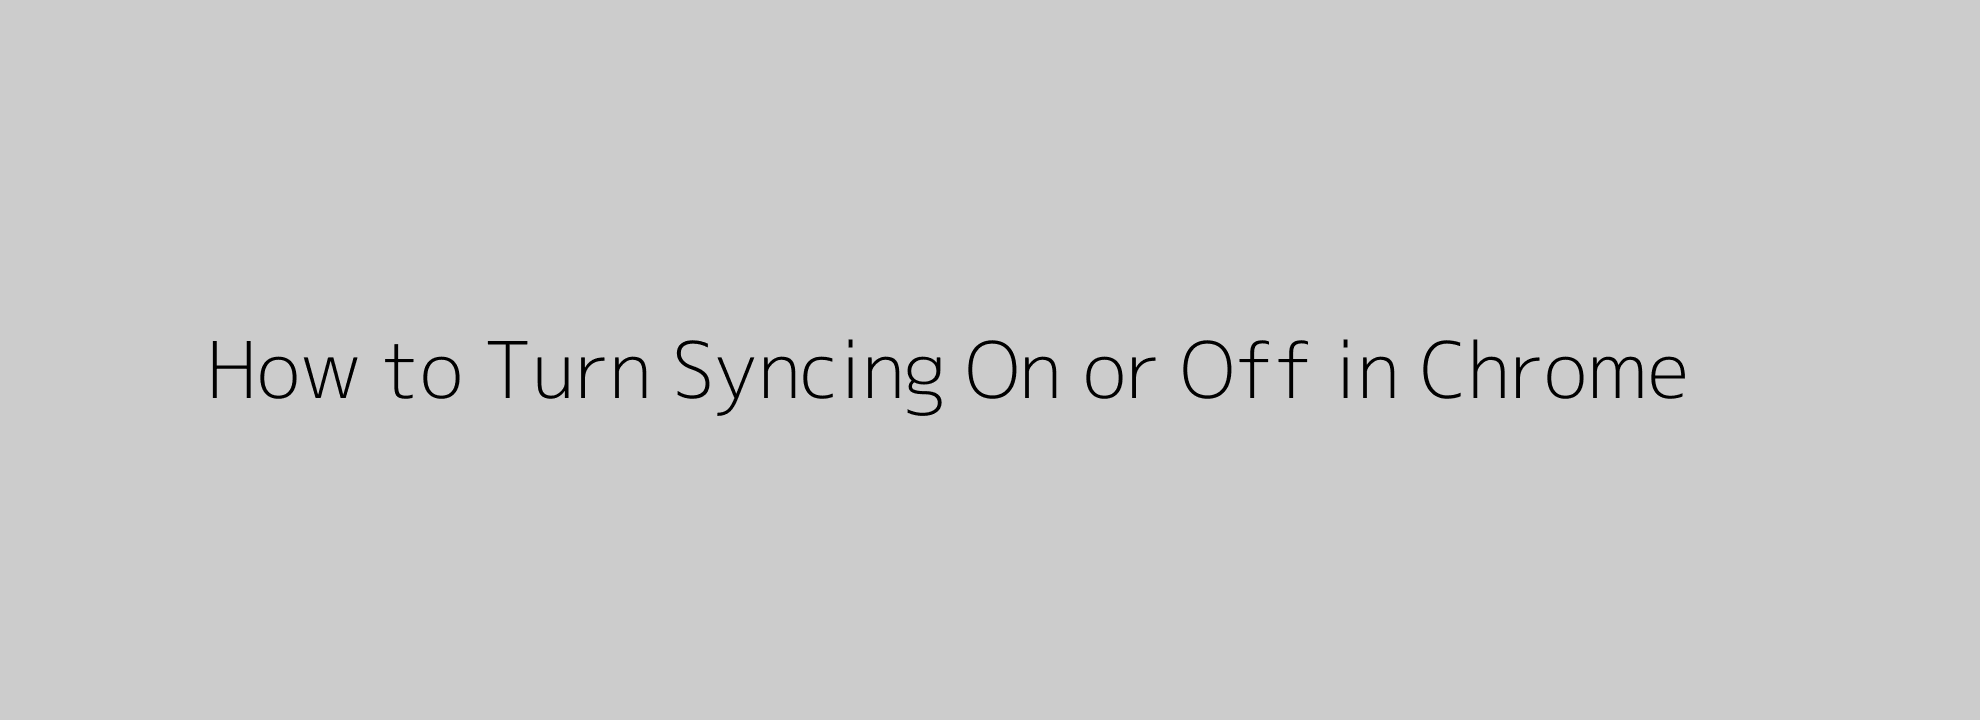 How to Turn Syncing On or Off in Chrome